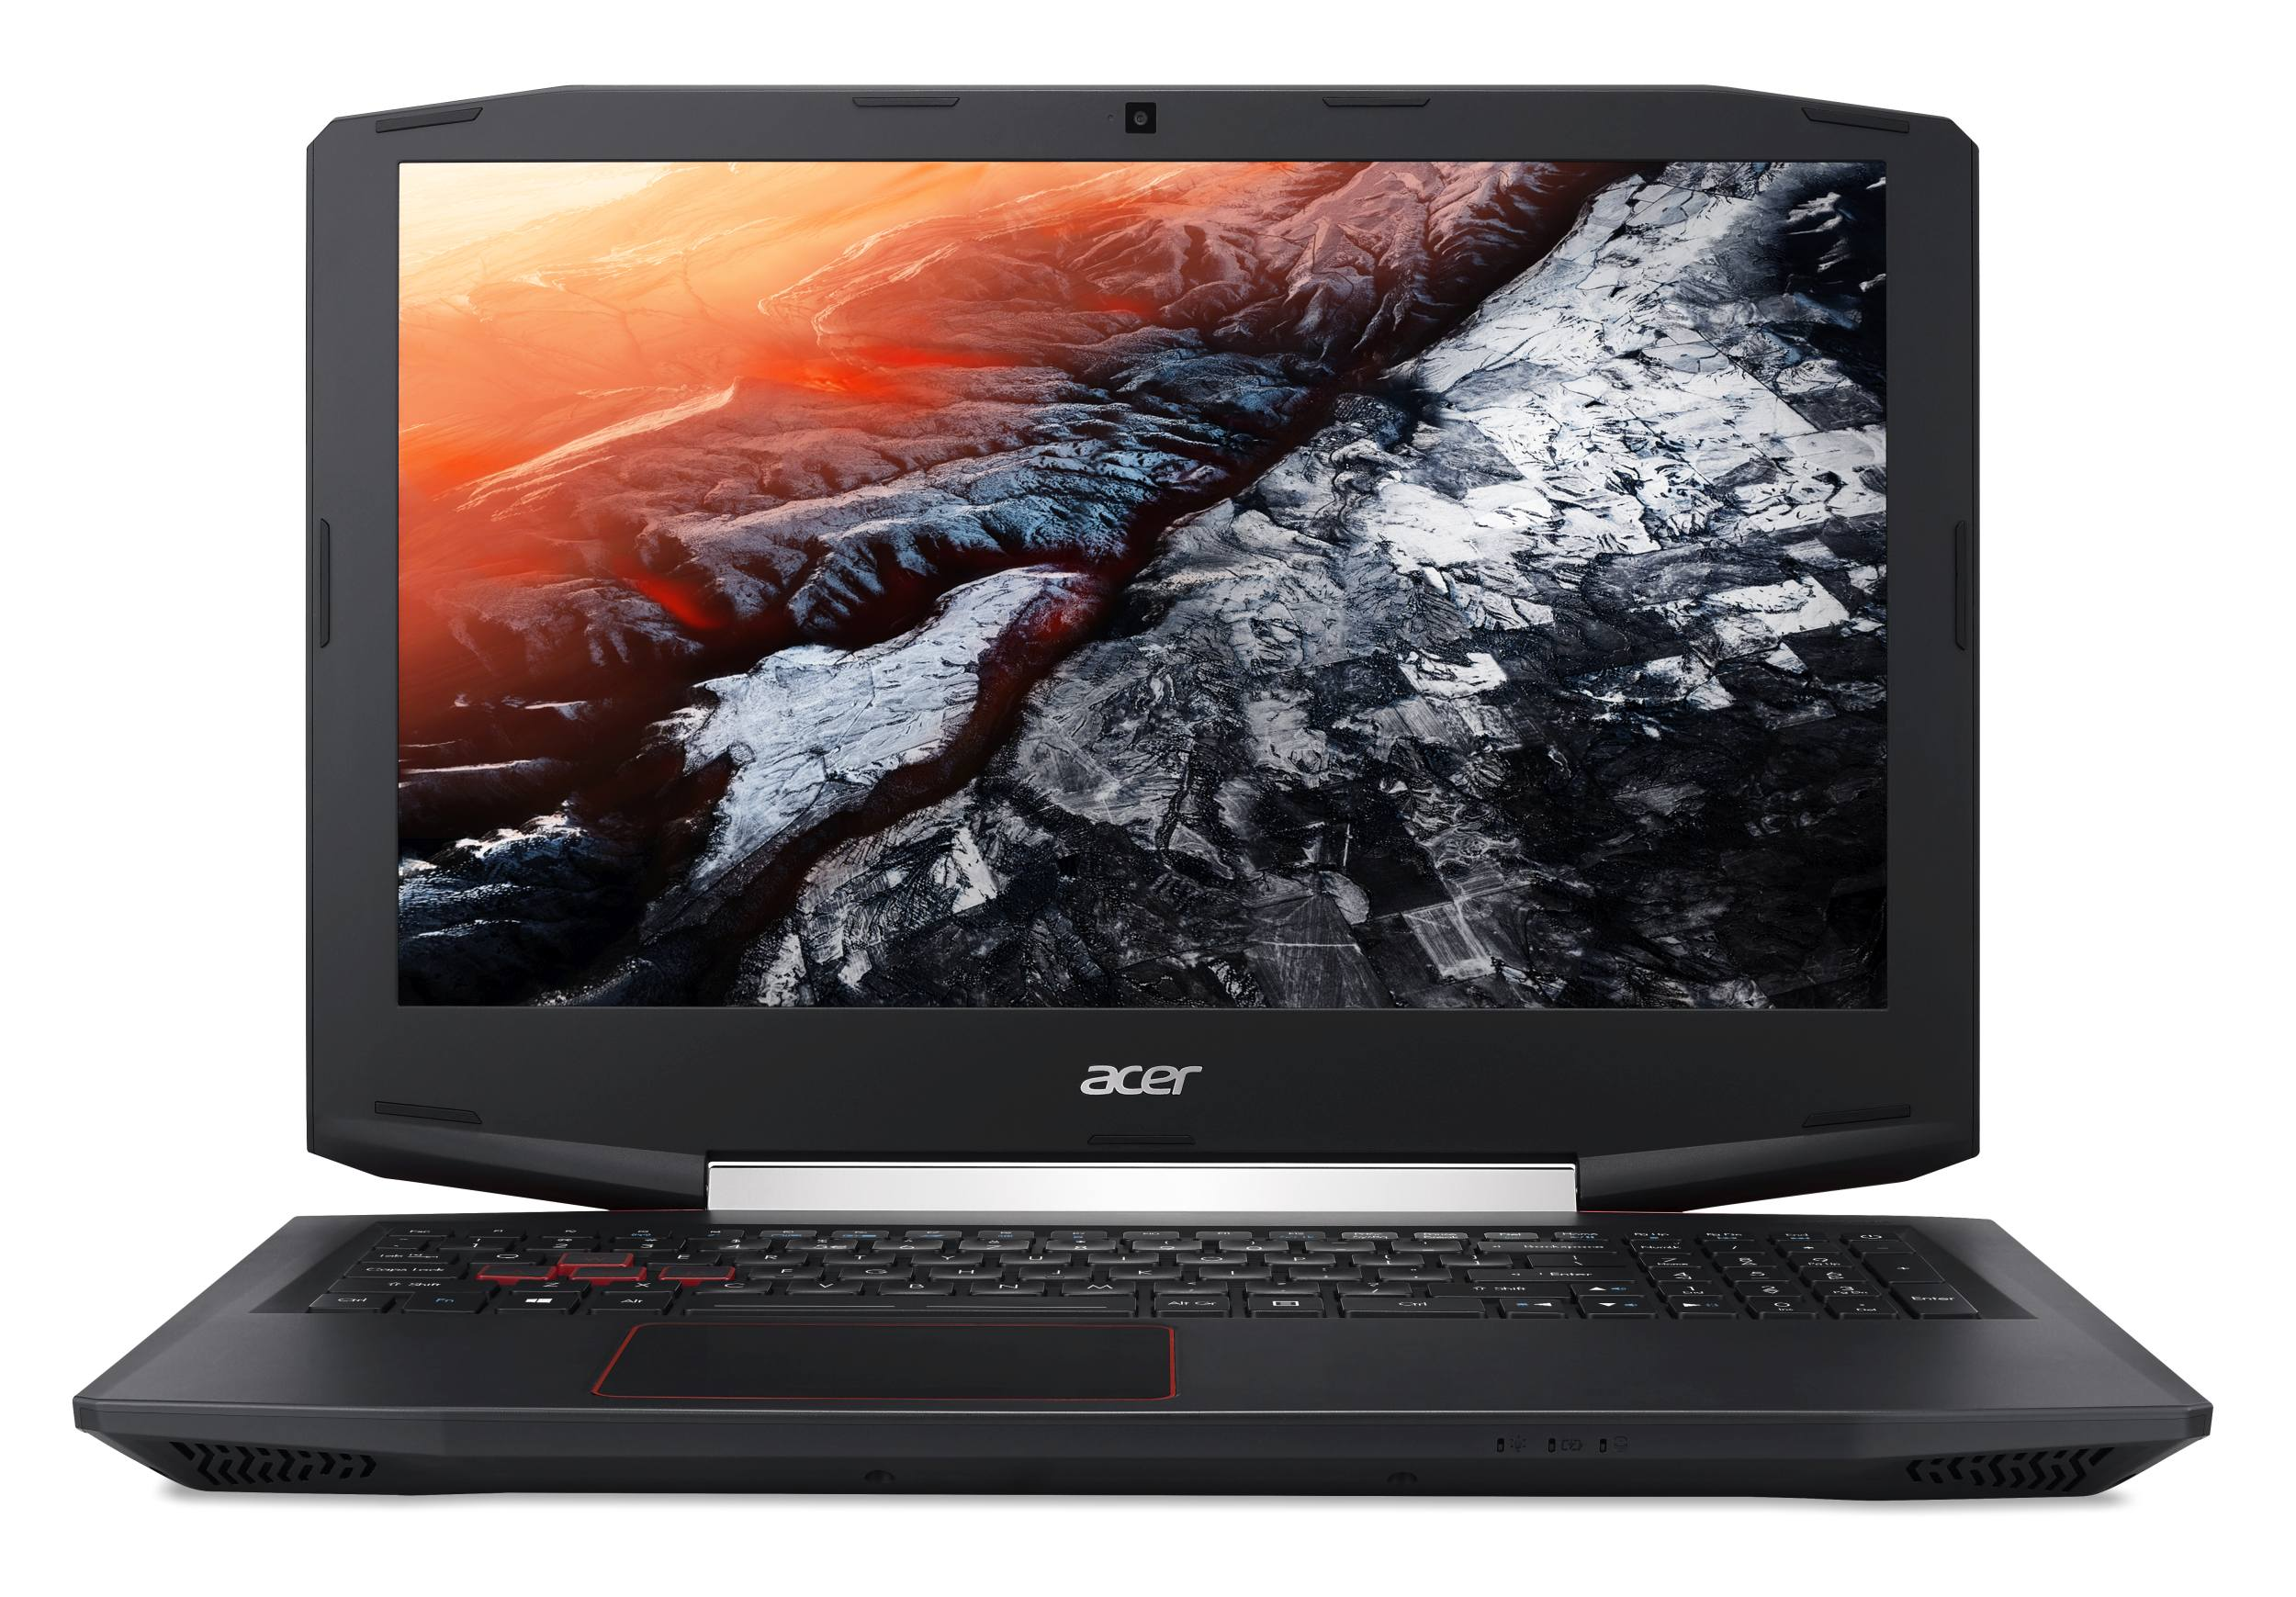 "Acer Aspire VX 15 (VX5-591G-56Q4) i5-7300HQ/8GB+N/128GB SSD+1TB/GTX 1050 4GB/15.6"" FHD IPS LED matný/BT/W10 Home/Black"